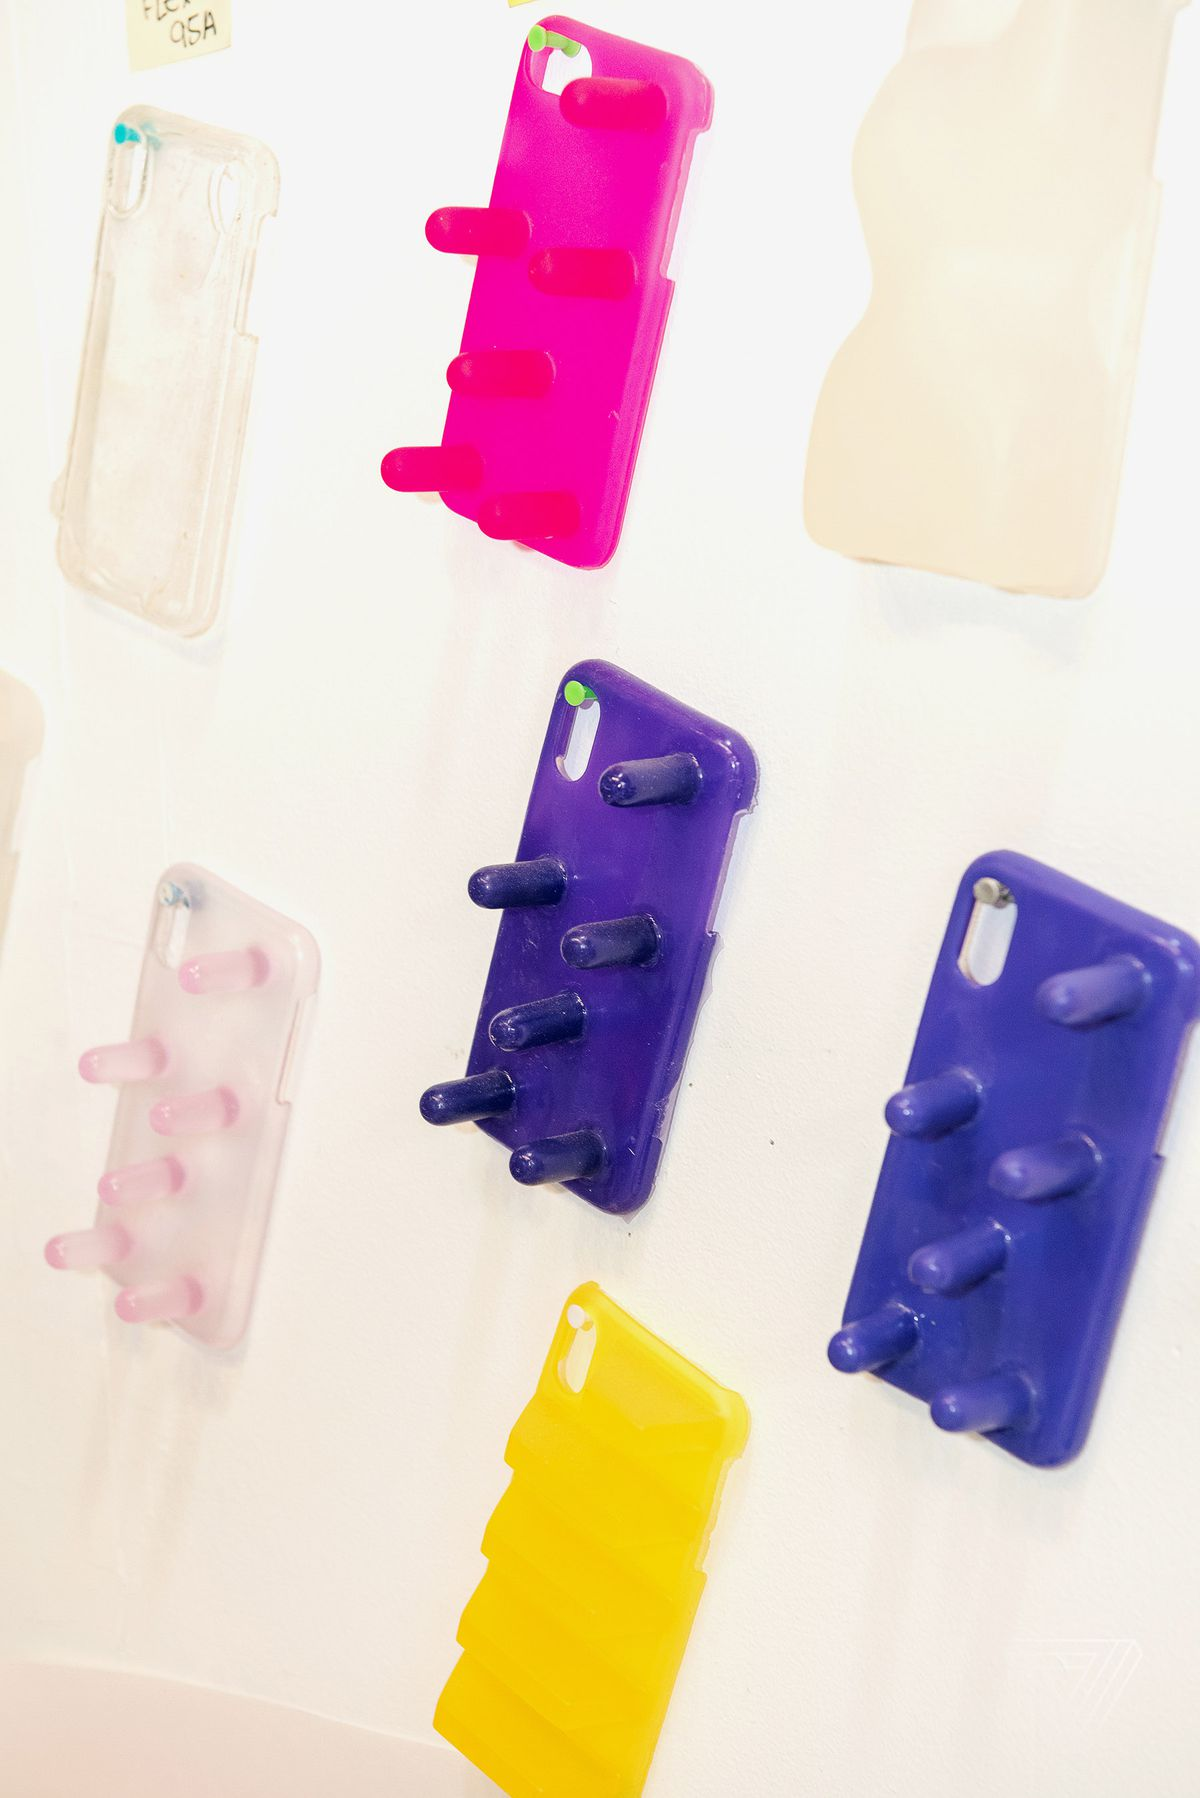 The Most Innovative Phone Cases Are Made In A Los Angeles Shed The